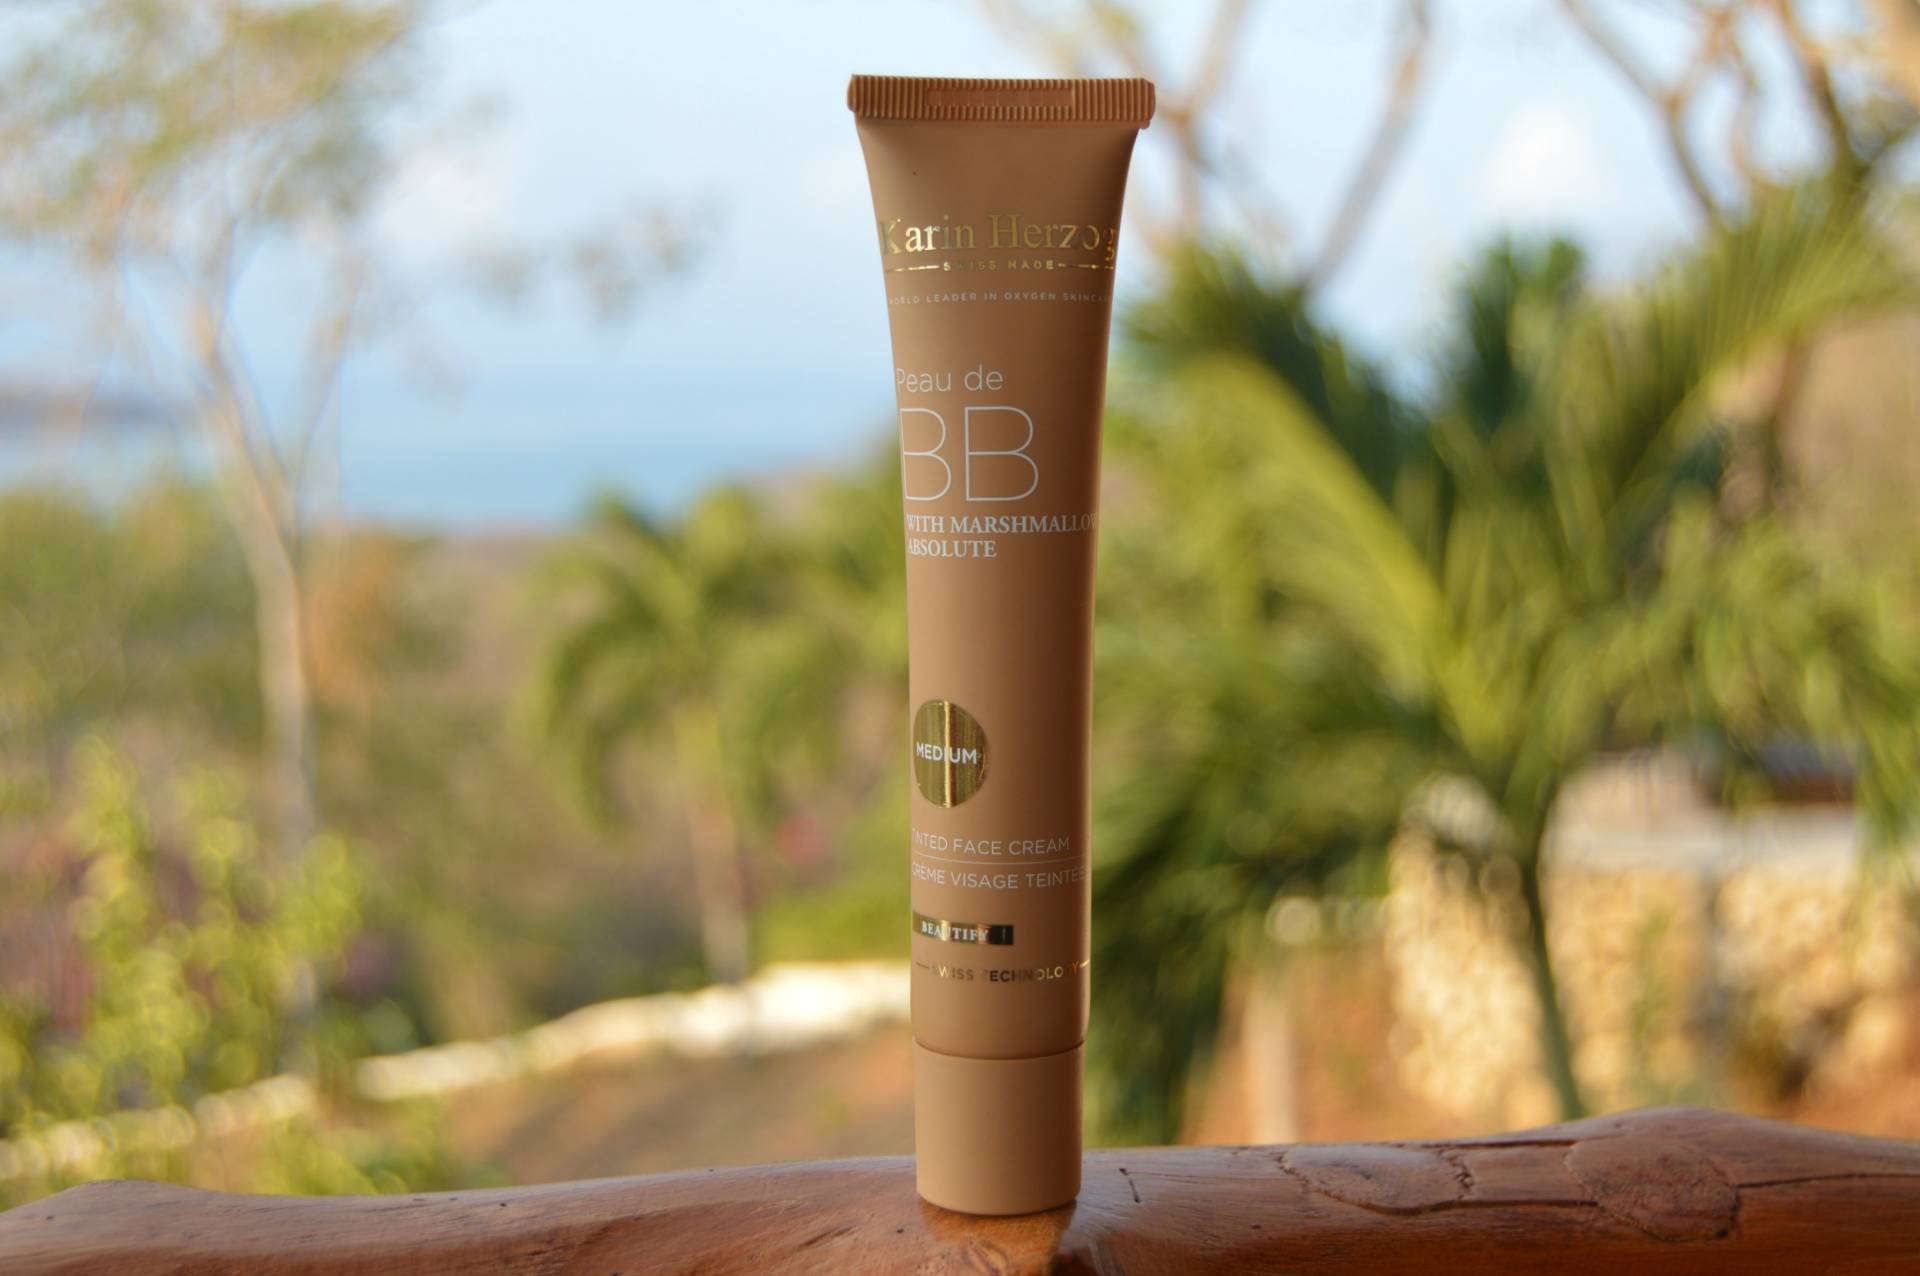 karin herzog bb cream discount code review inhautepursuit